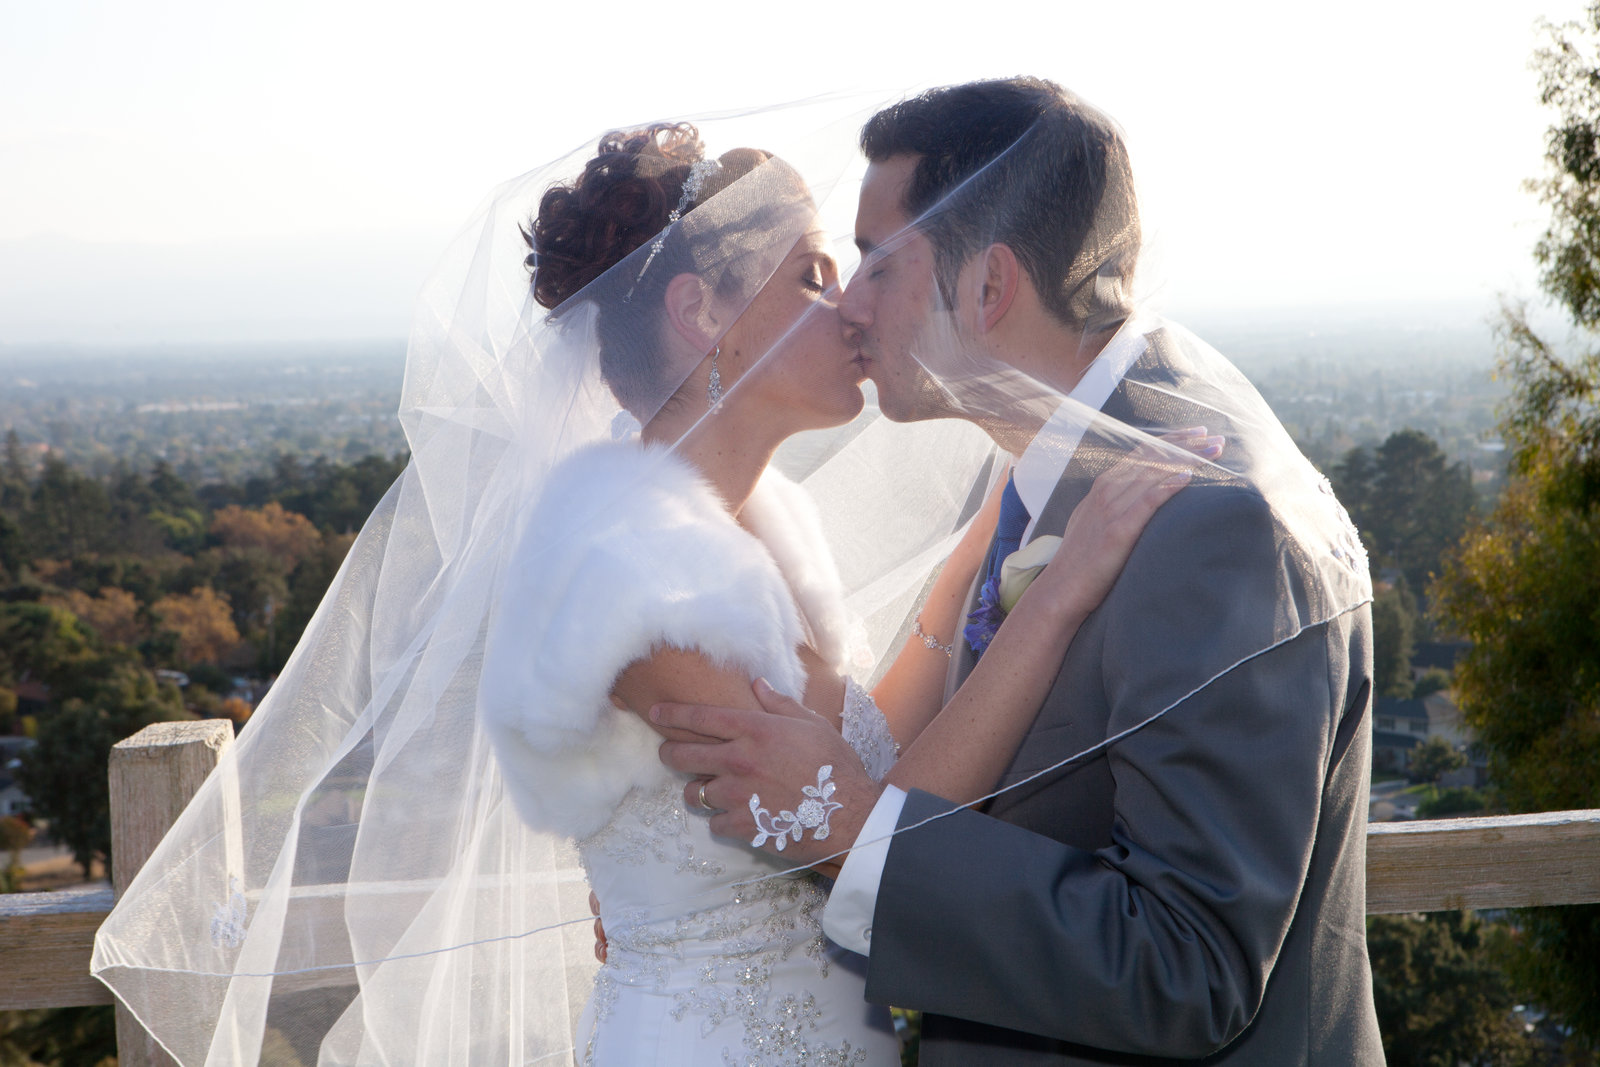 Gorgeous backdrop provides the perfect scenery for bride and groom's kiss